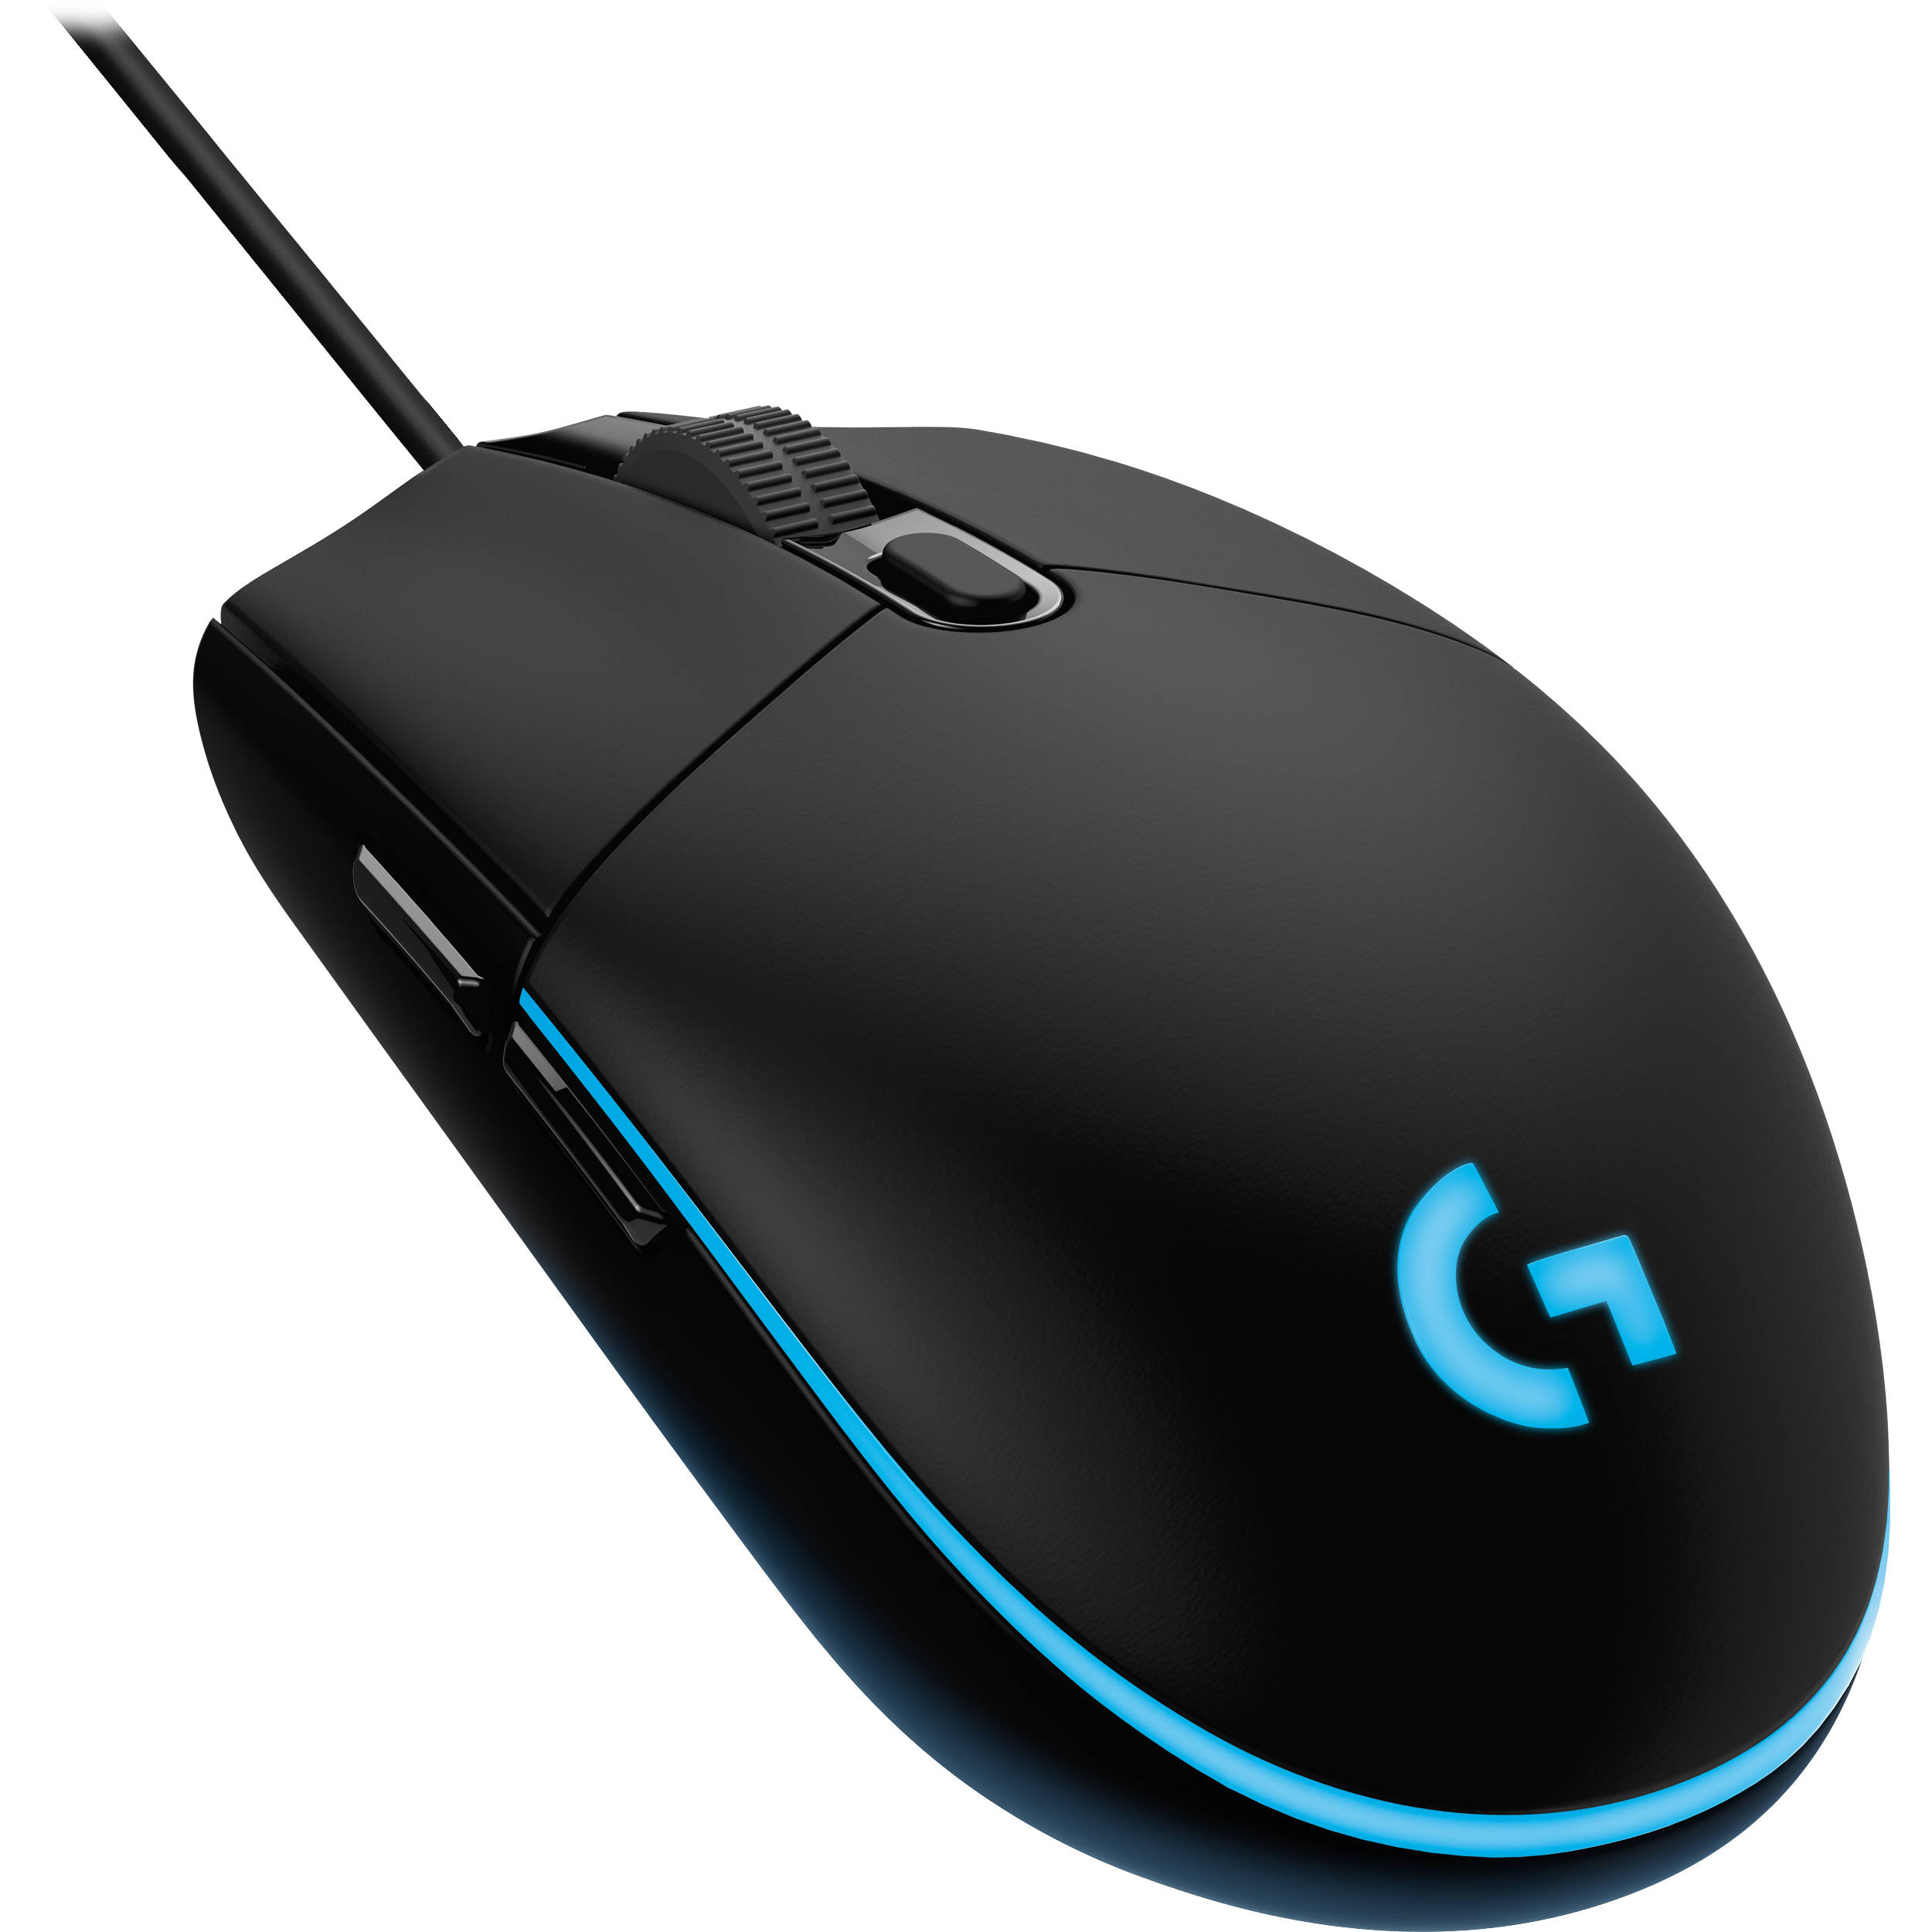 LOGITECH G203 WINDOWS 8 X64 DRIVER DOWNLOAD